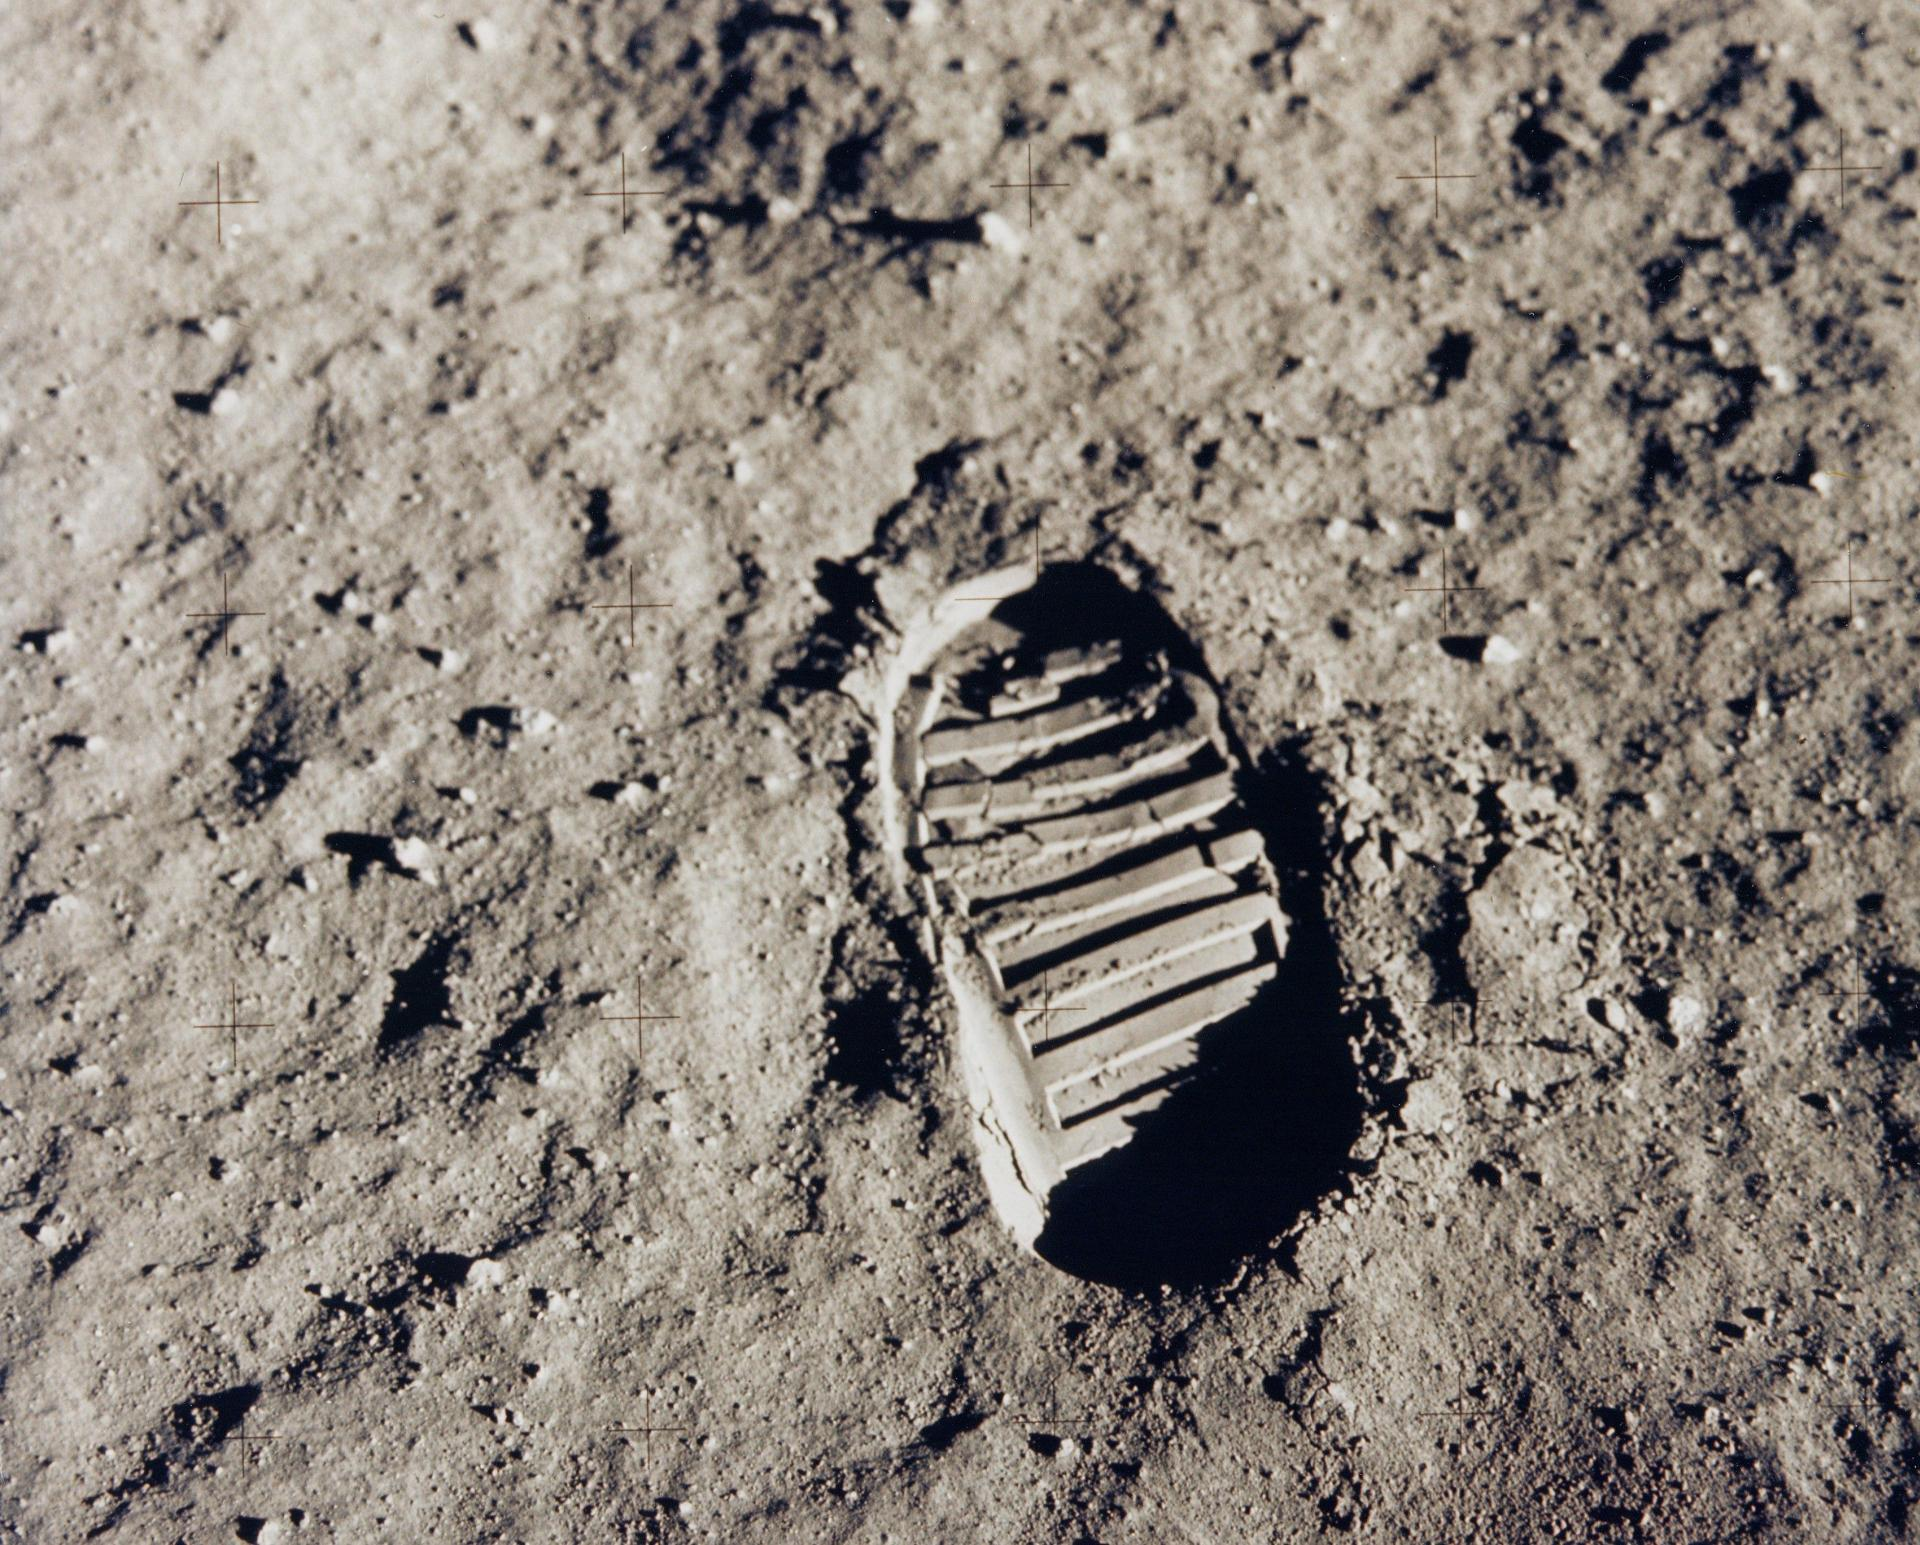 One Of The First Steps On The Moon